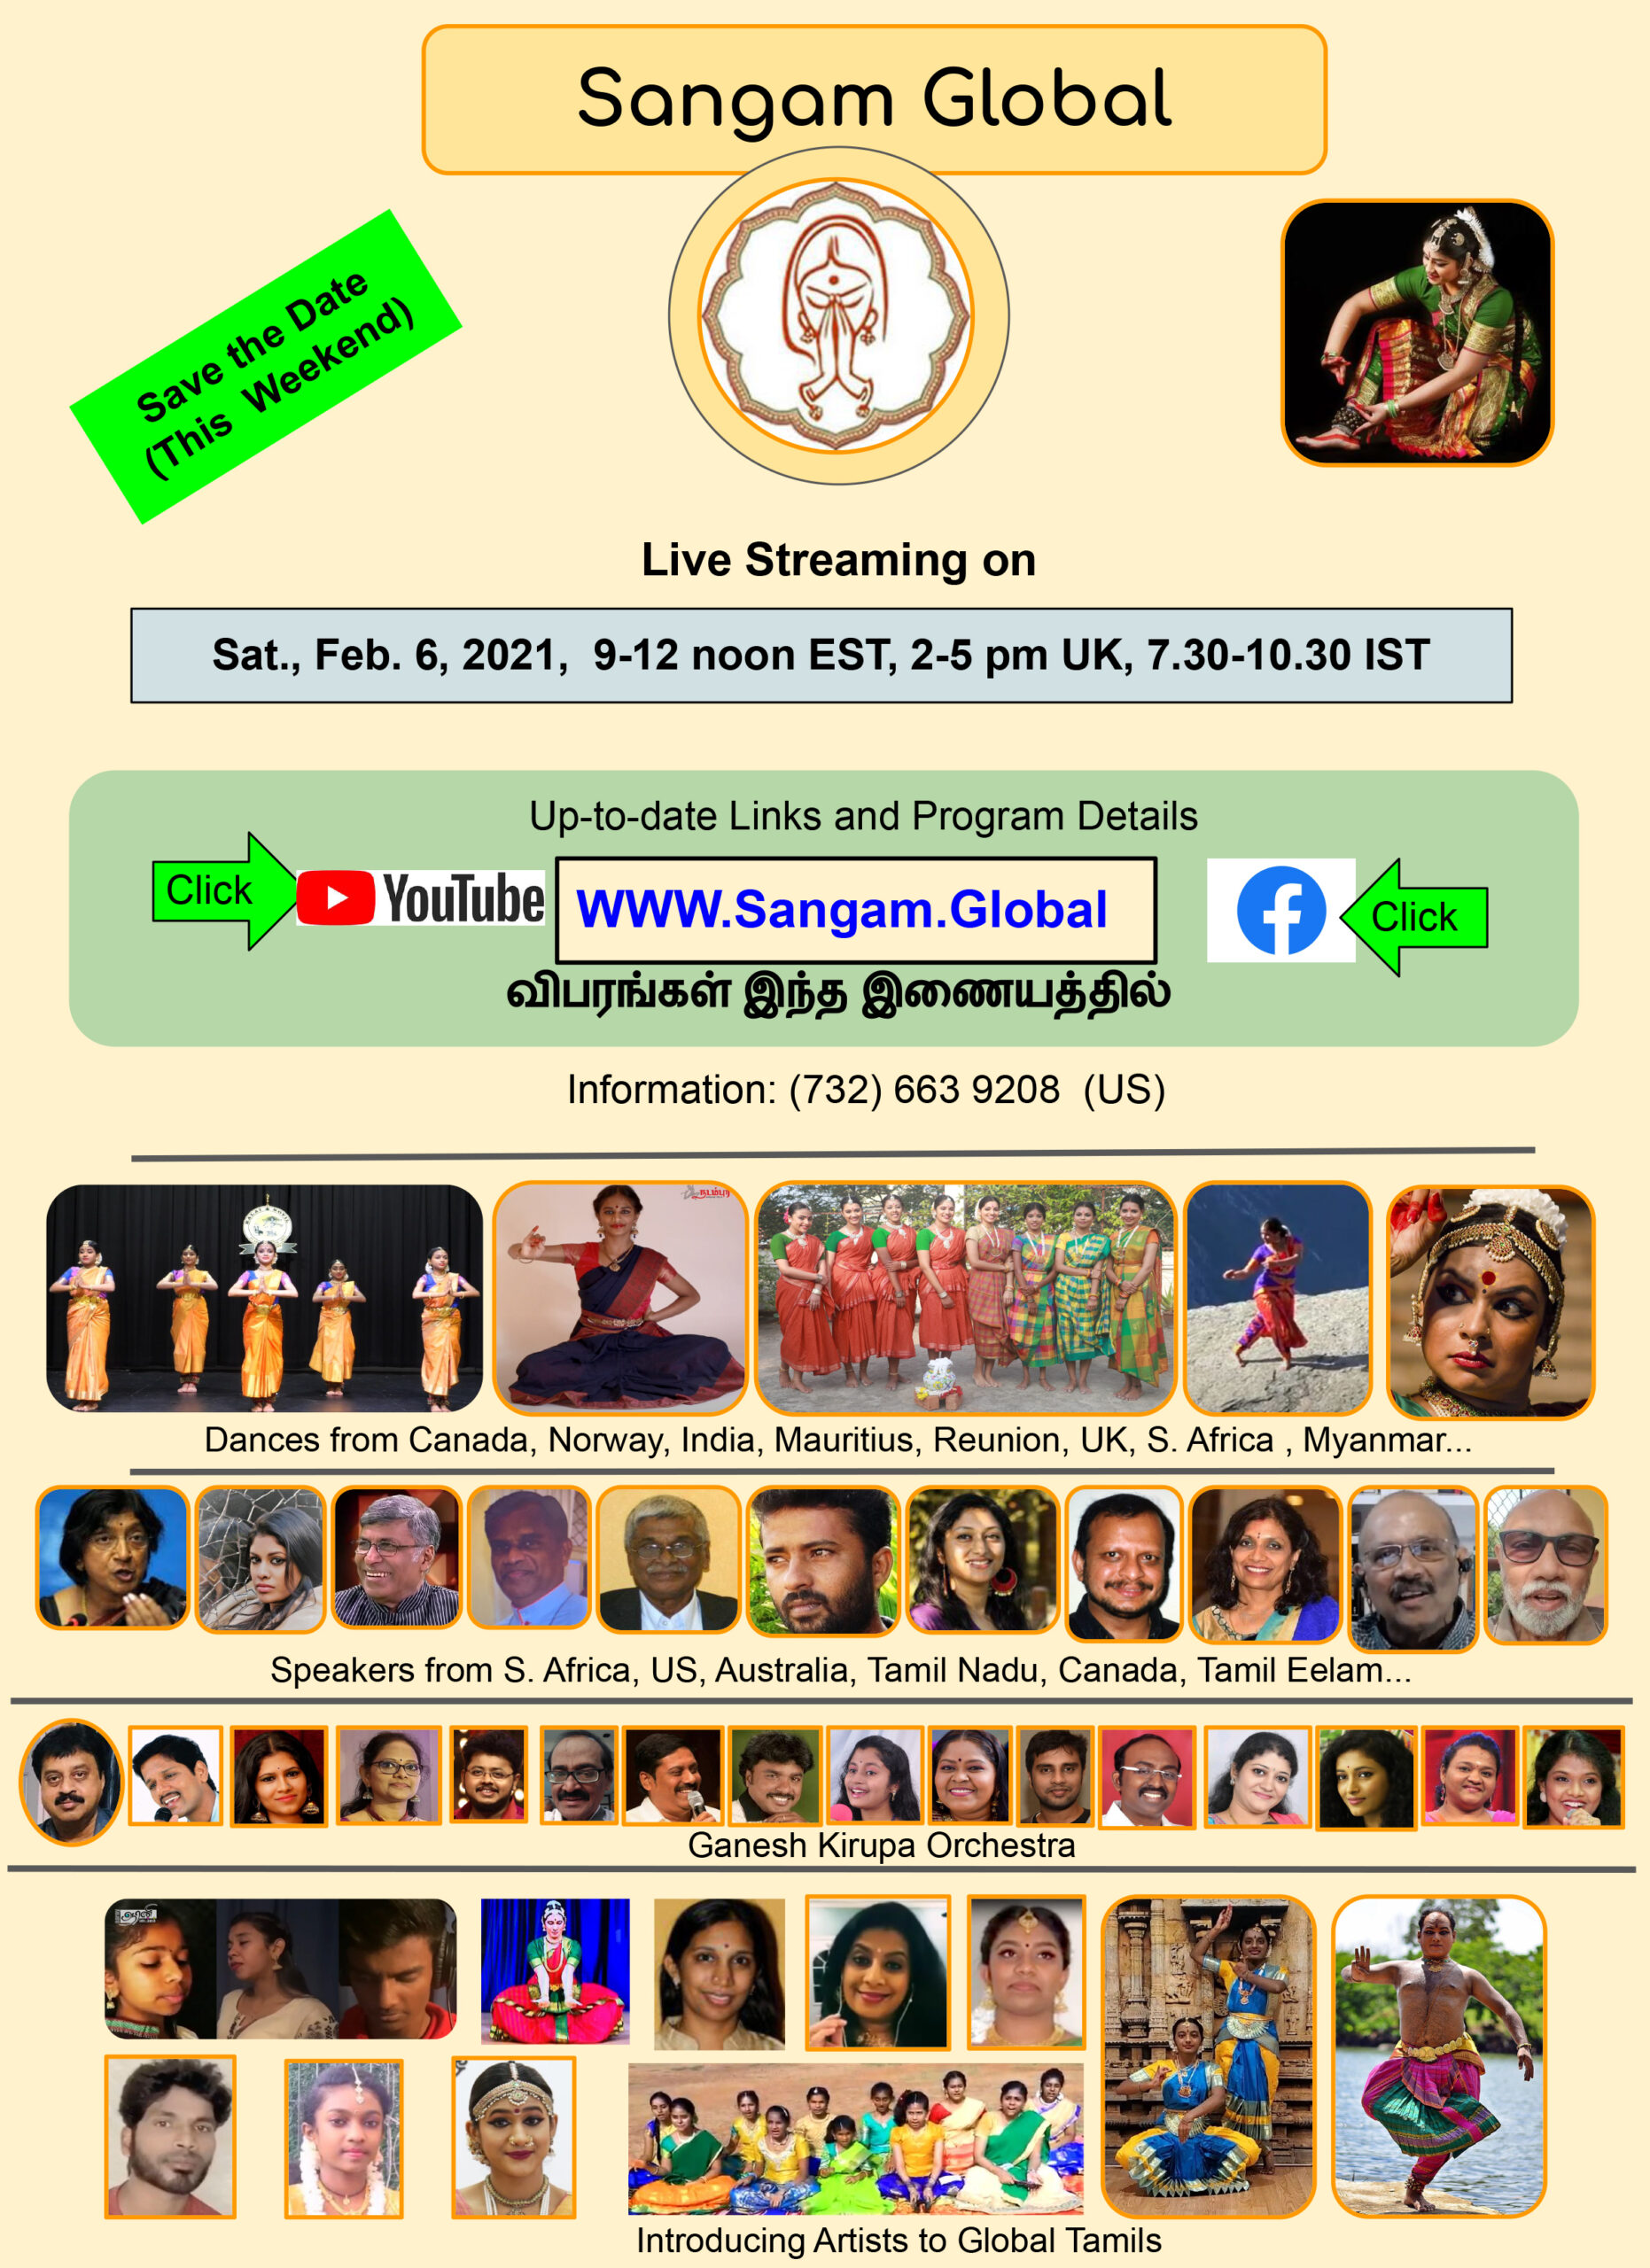 Sangam Global, Live Streaming on Saturday, Feb 6, 2021 Starting at 9 am (New York Time)